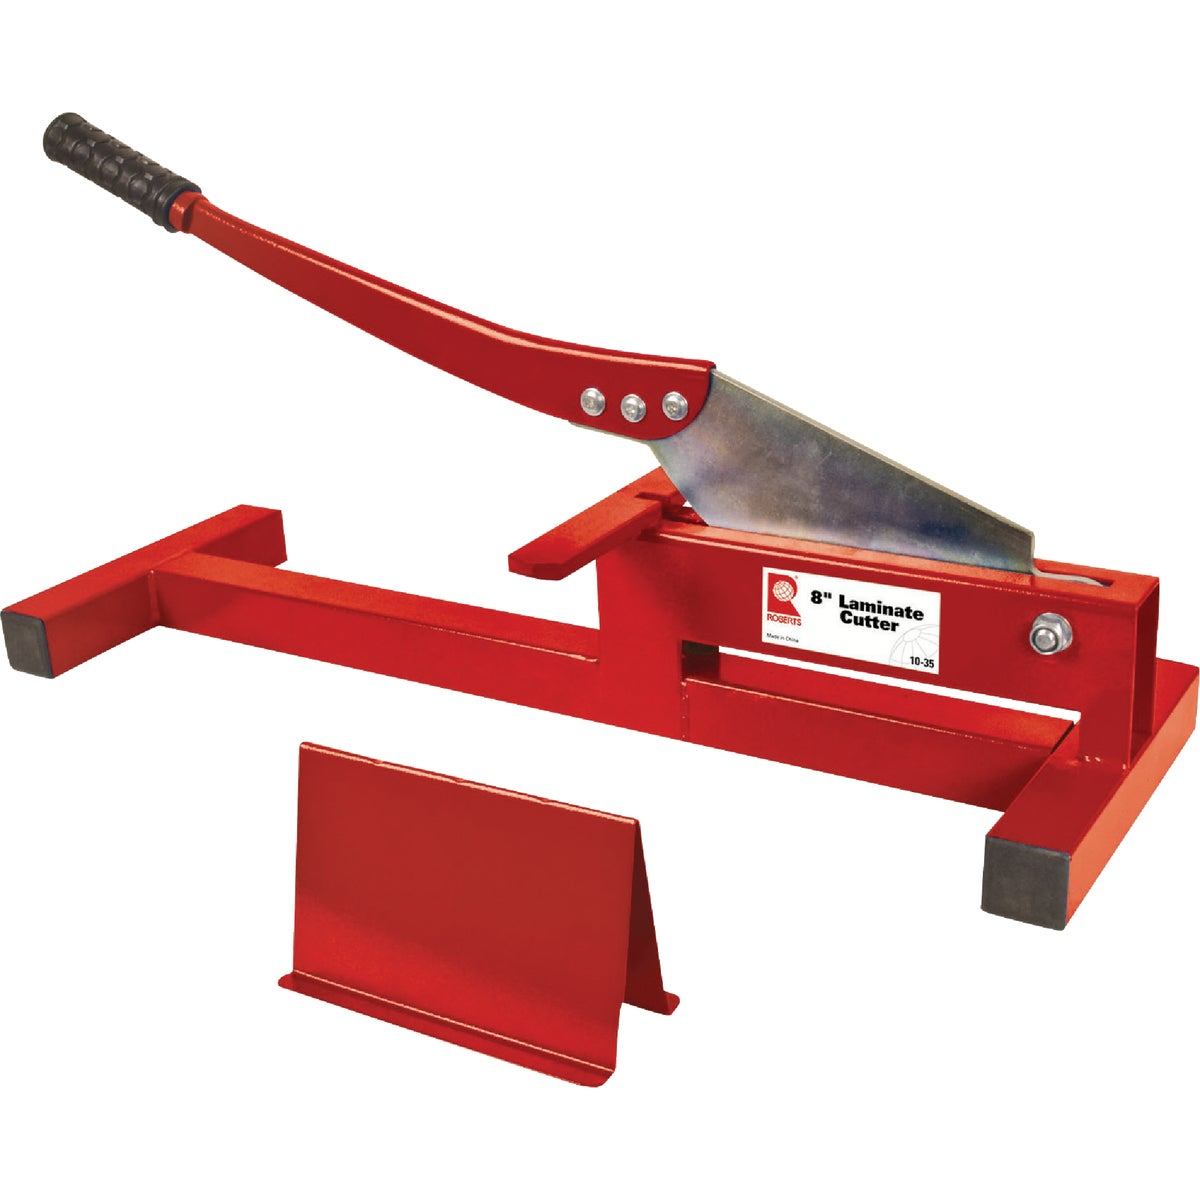 "8"" LAMINATE CUTTER - 10-35 by Qep Co Inc Roberts"